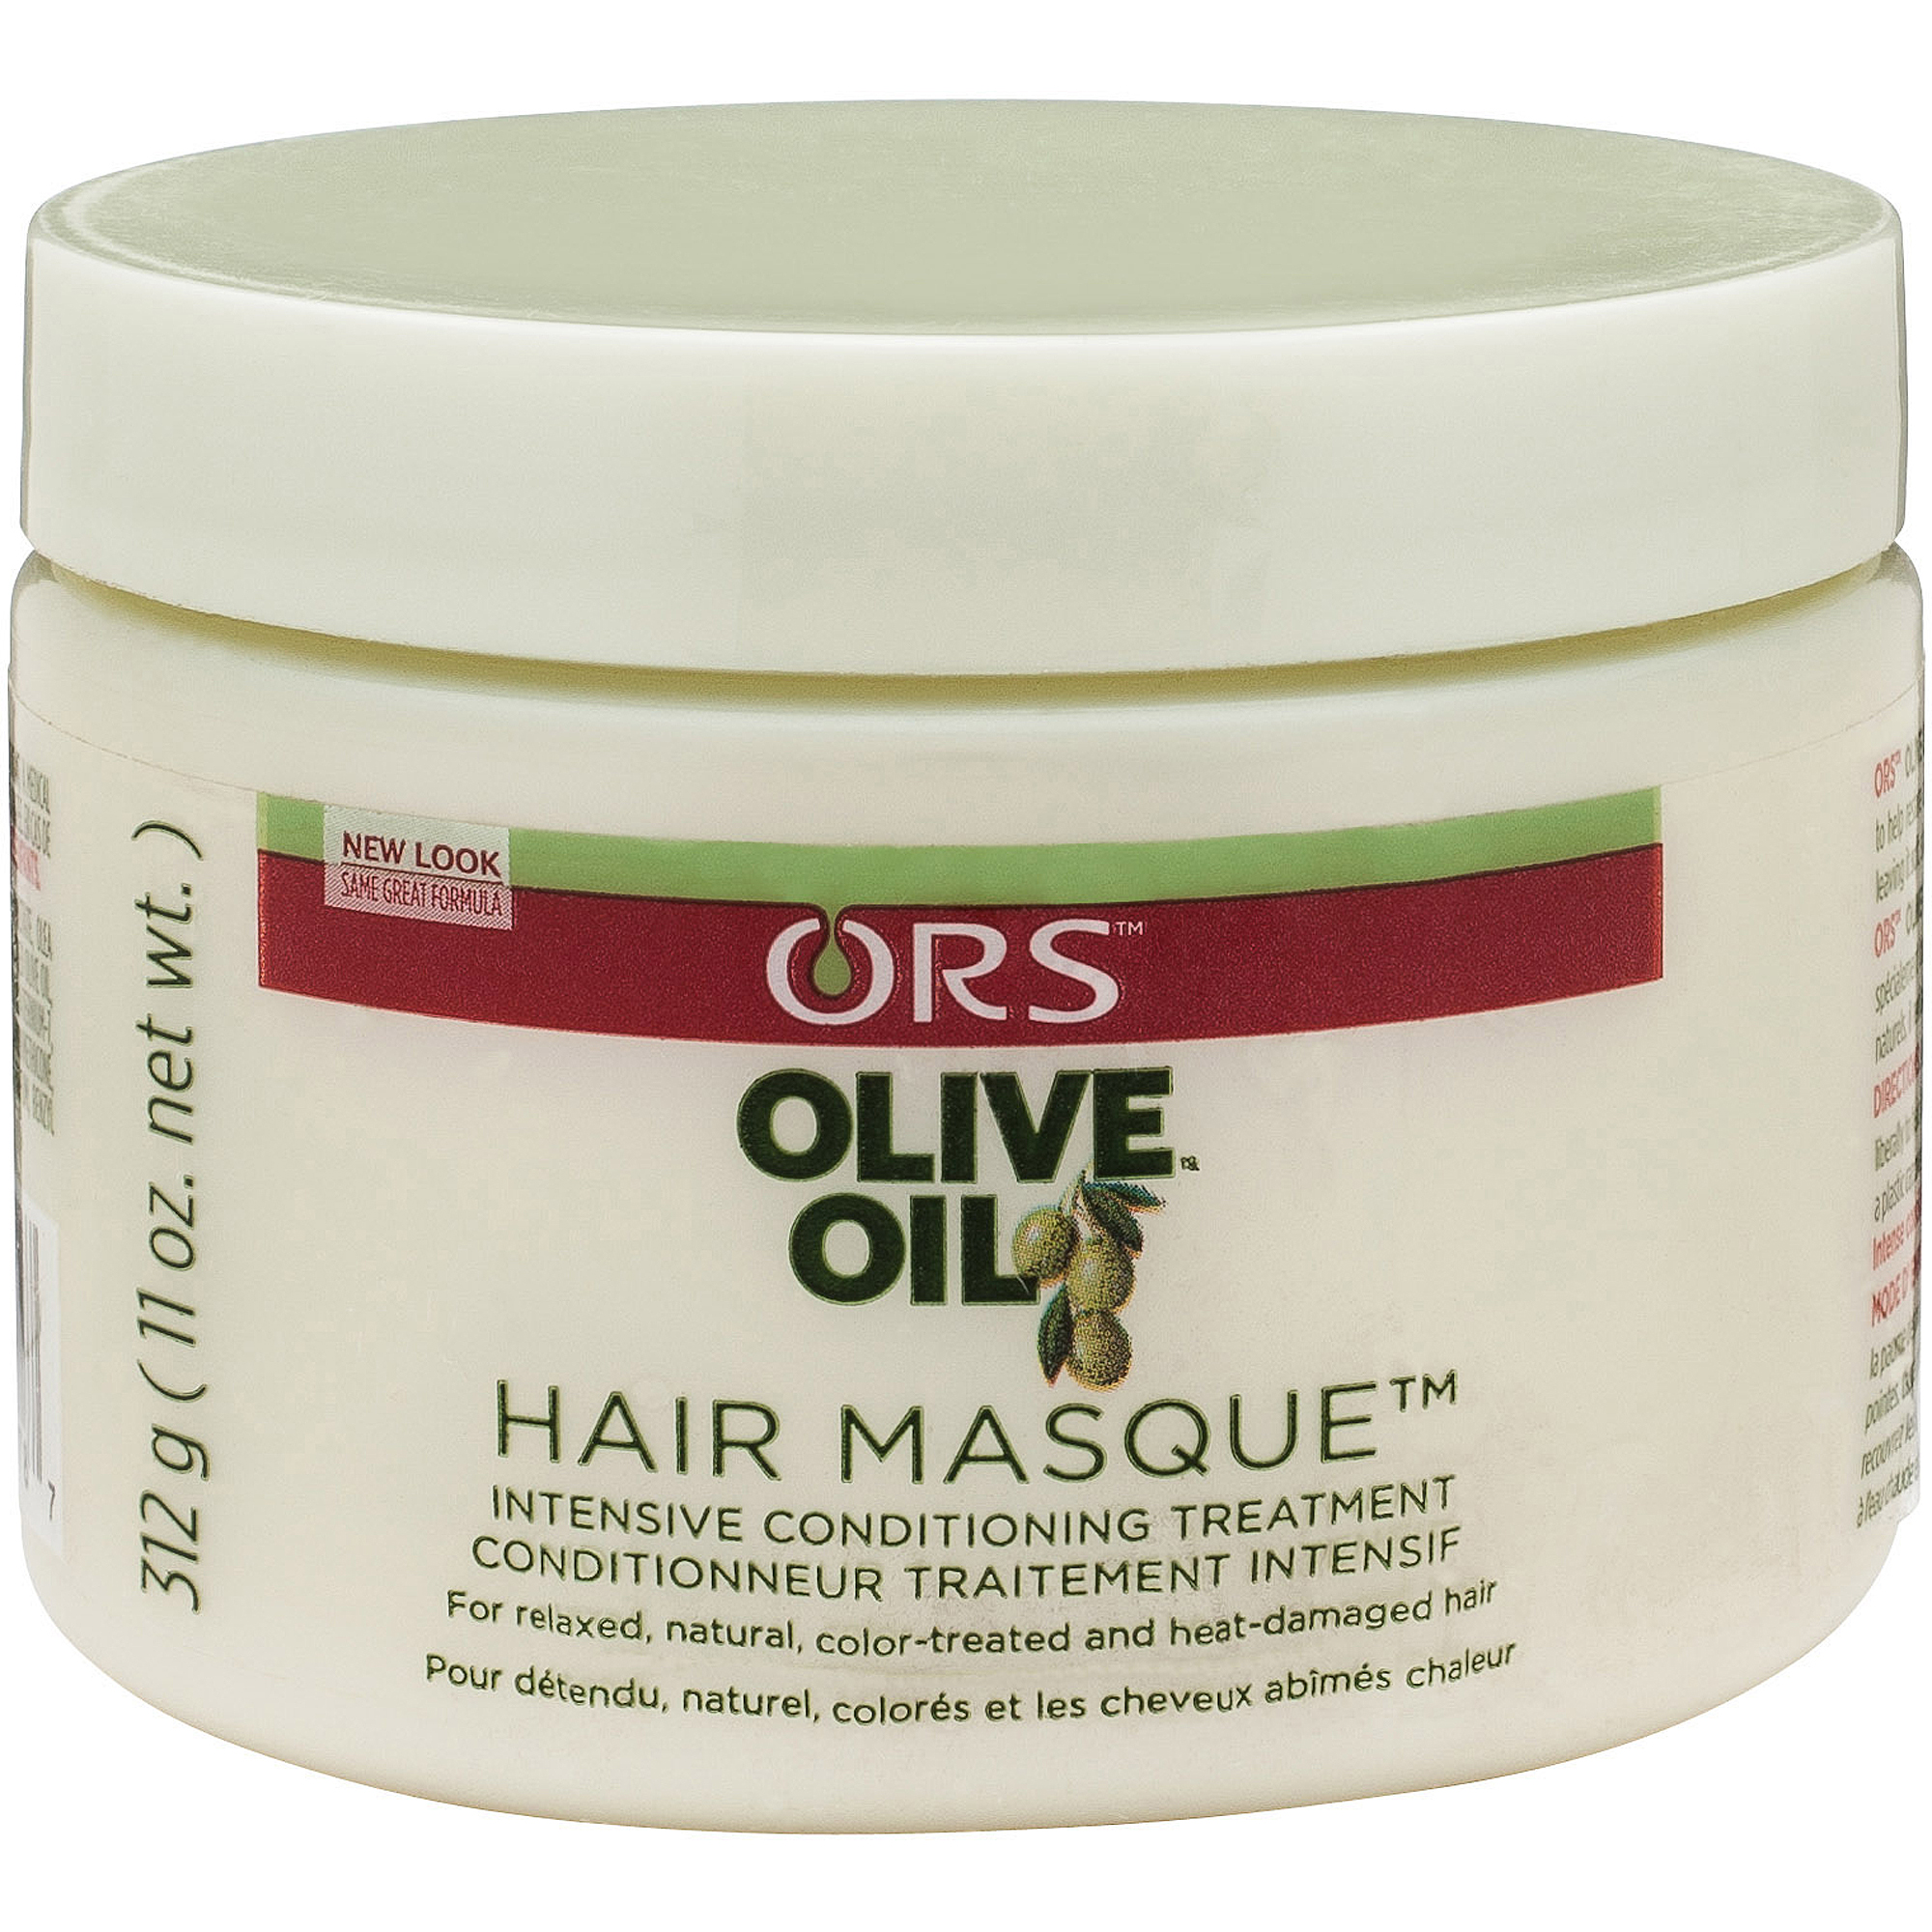 ORS™ Olive Oil Hair Masque, 11 oz